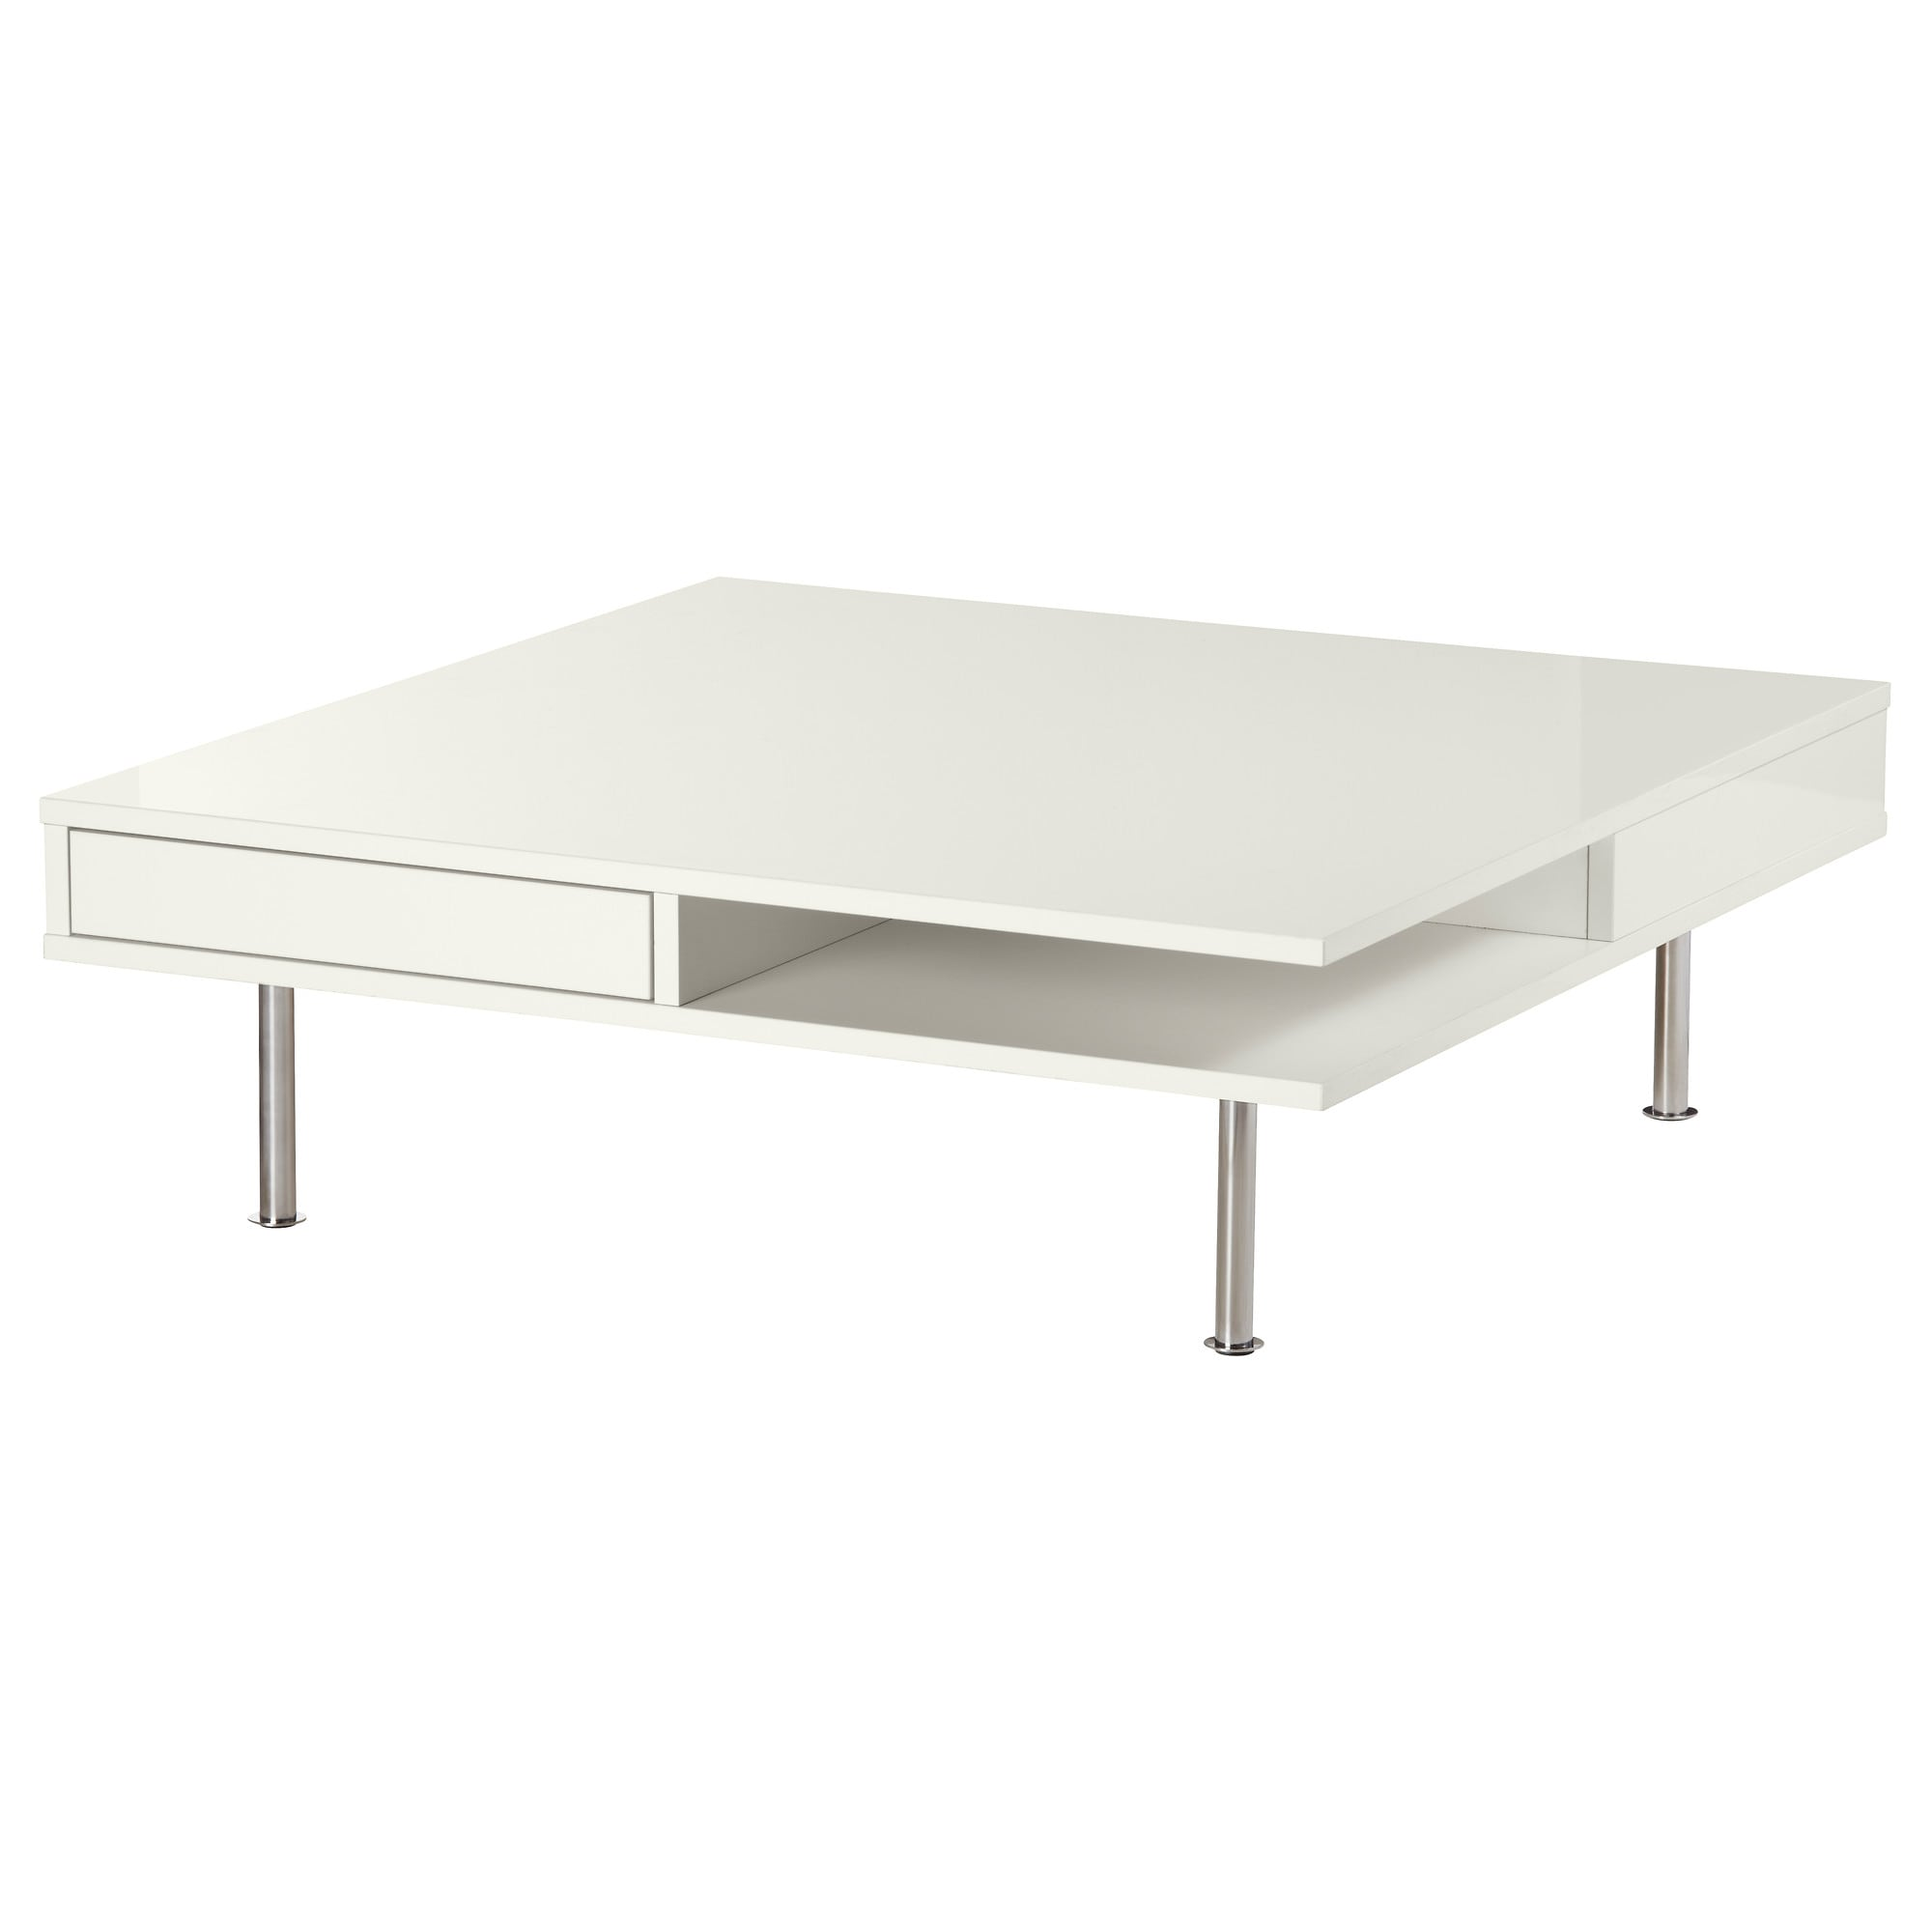 occasional tables tray storage window ikea tofteryd coffee table high gloss white small accent smooth running drawers for storing remote controls magazines etc bedside charging